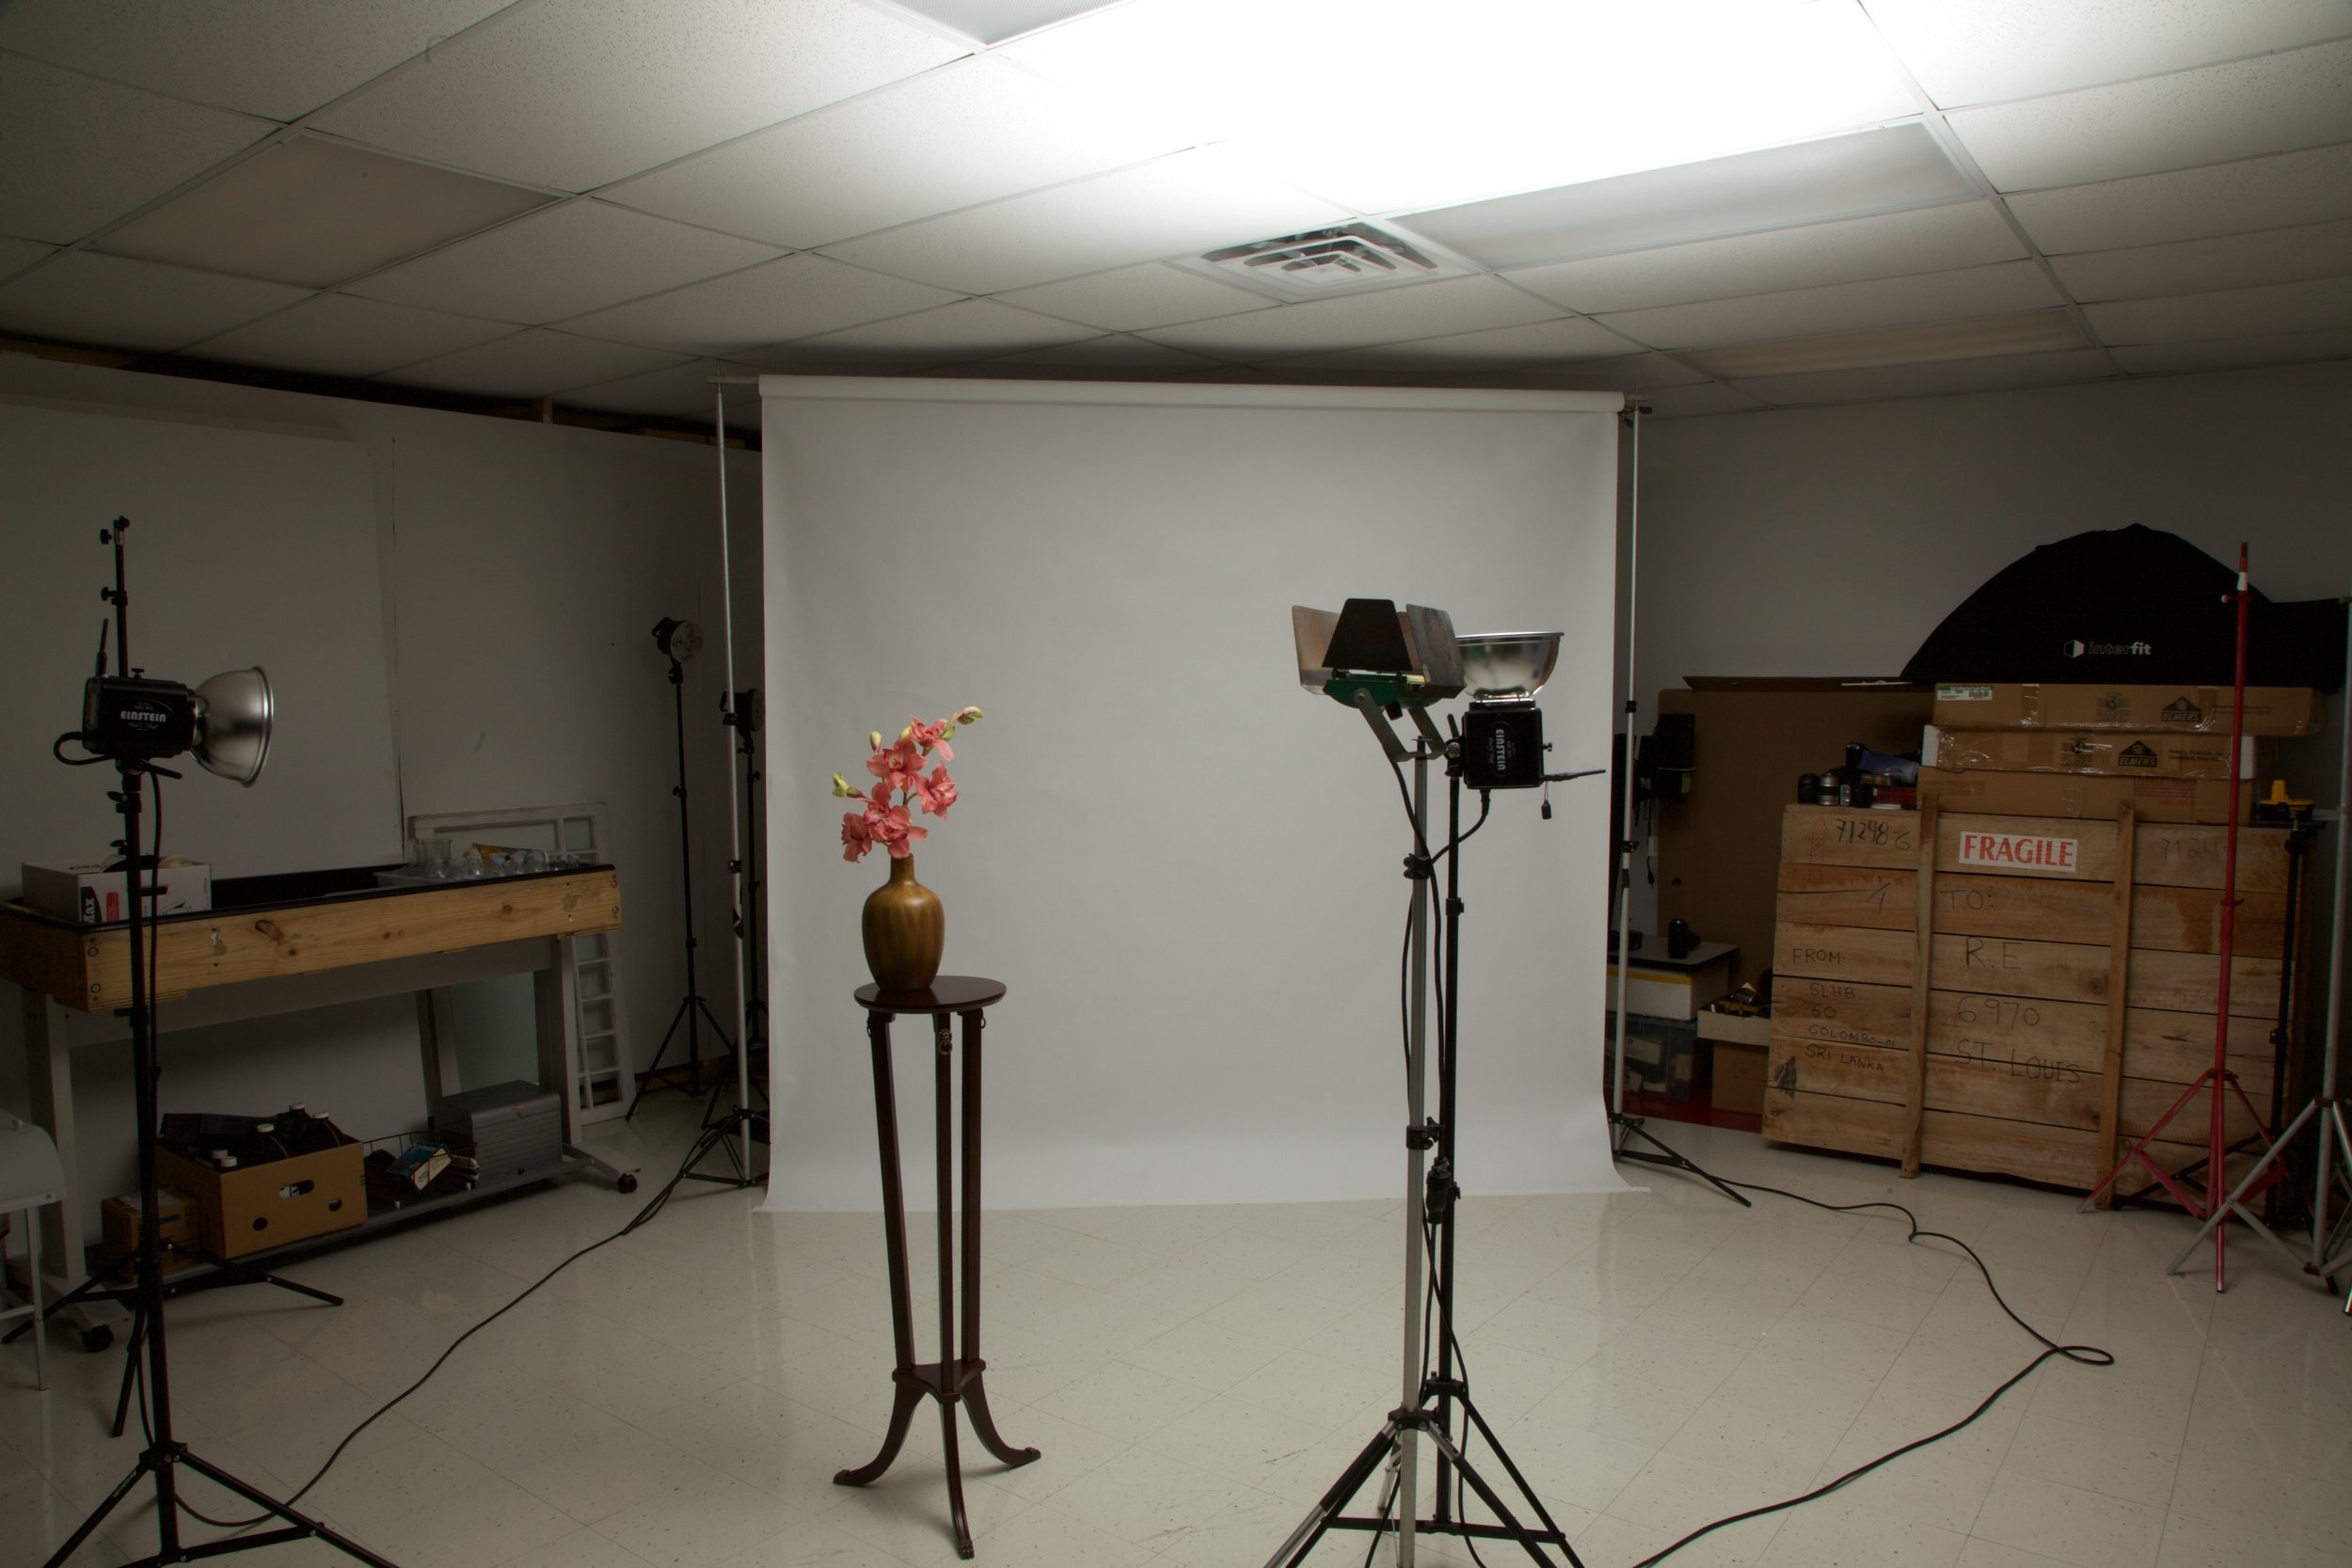 640 watt second studio flash - 1/125th second at f22 ISO 100 - overhead lights not visible